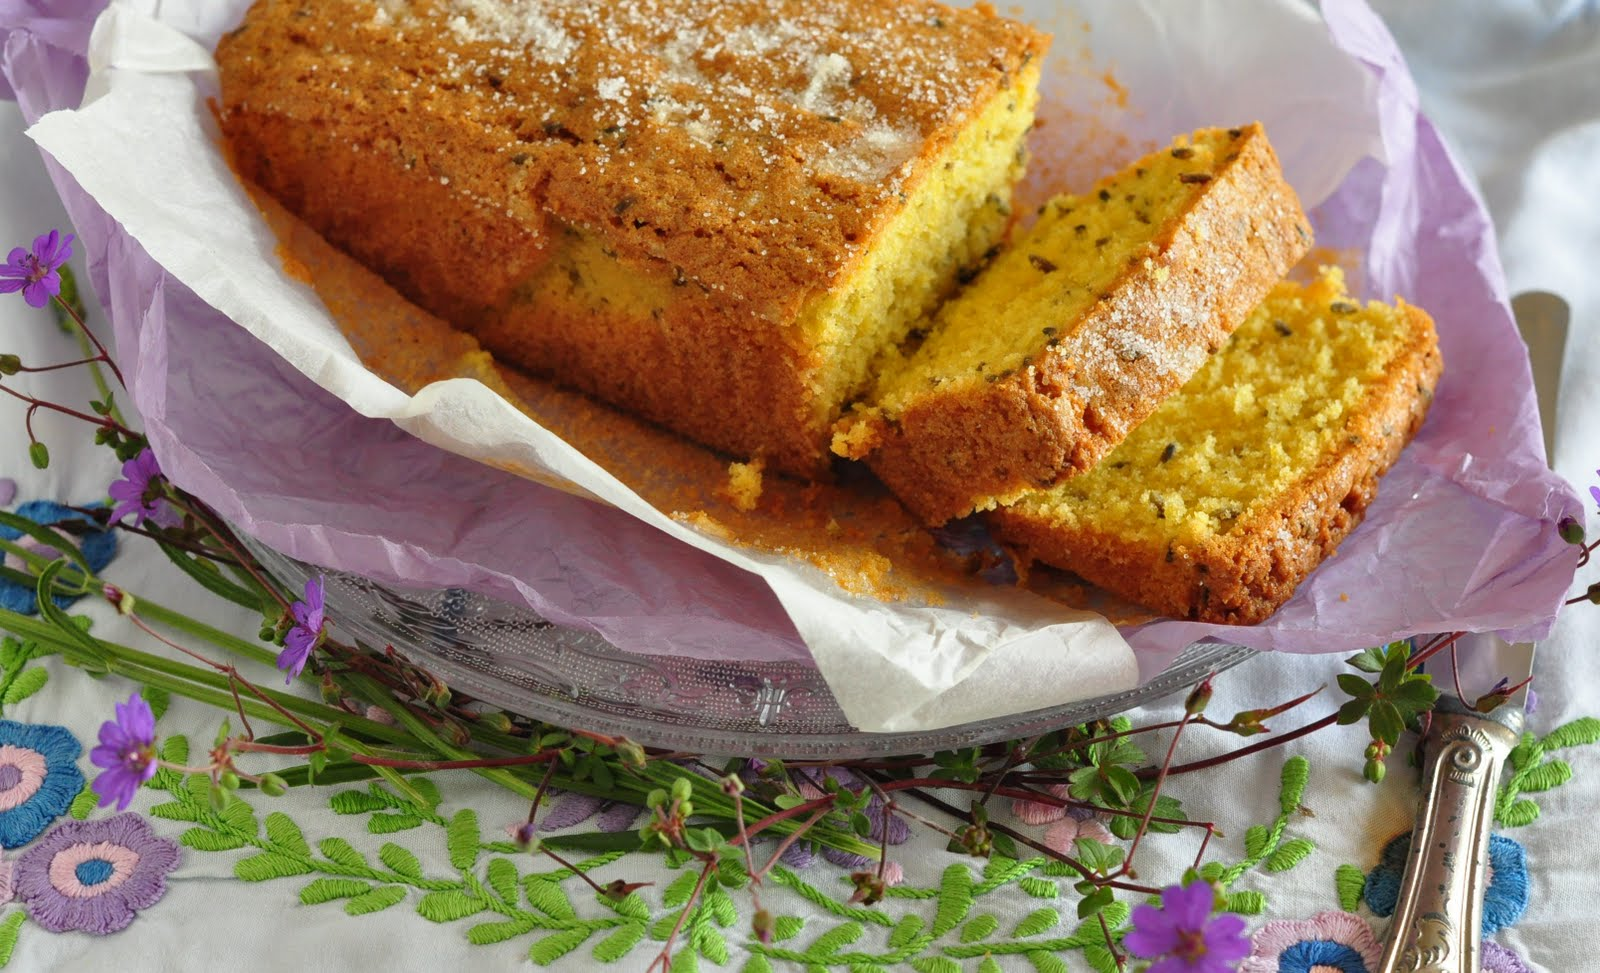 stuff i make bake and love lavender madeira the taste of summer oh yum so gorgeous and so easy this beauty is smattered with lavender buds and covered in sugar a golden crumbly cake with a subtle floral scent that